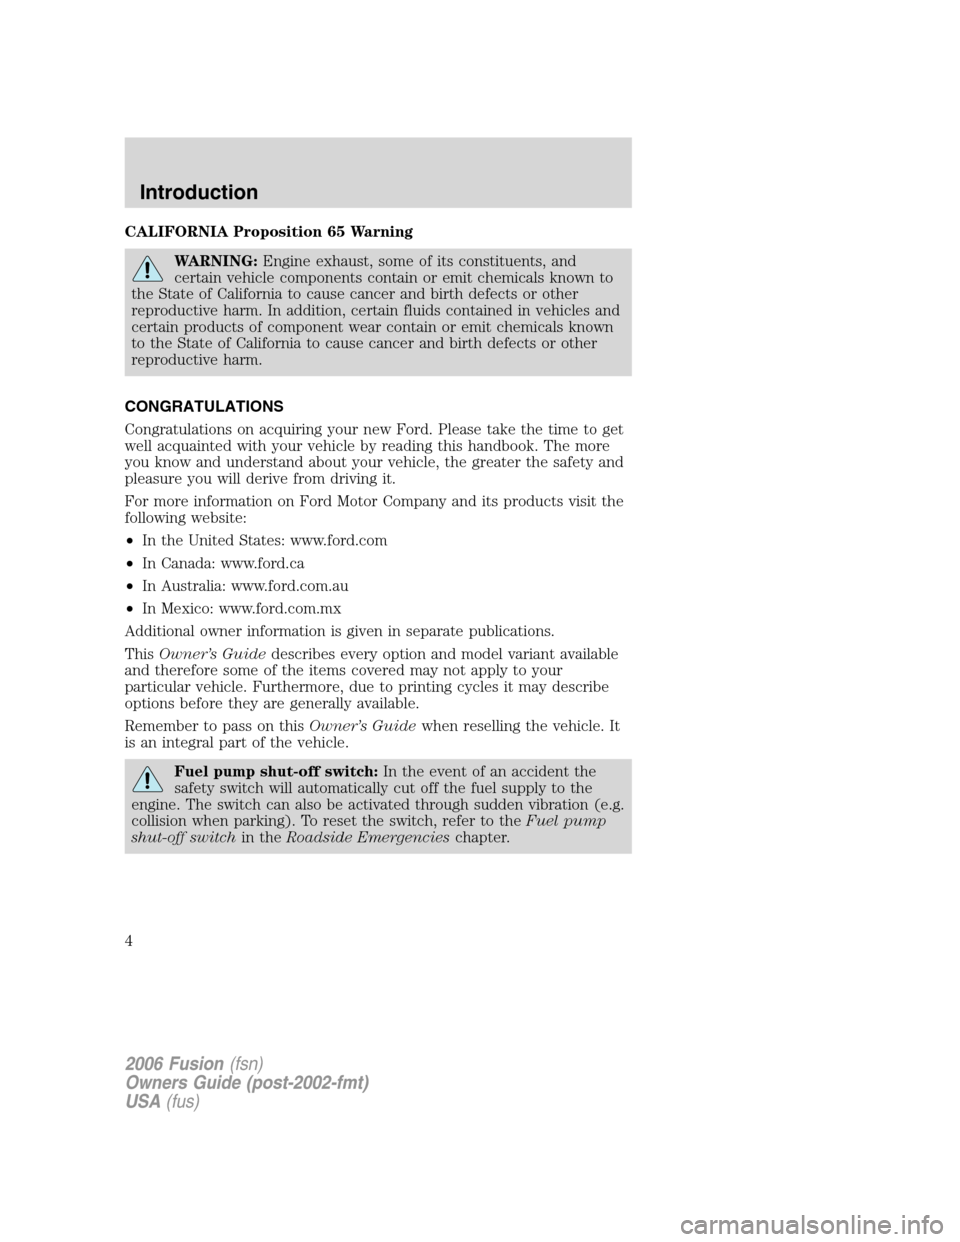 FORD FUSION (AMERICAS) 2006 1.G Owners Manual, Page 4